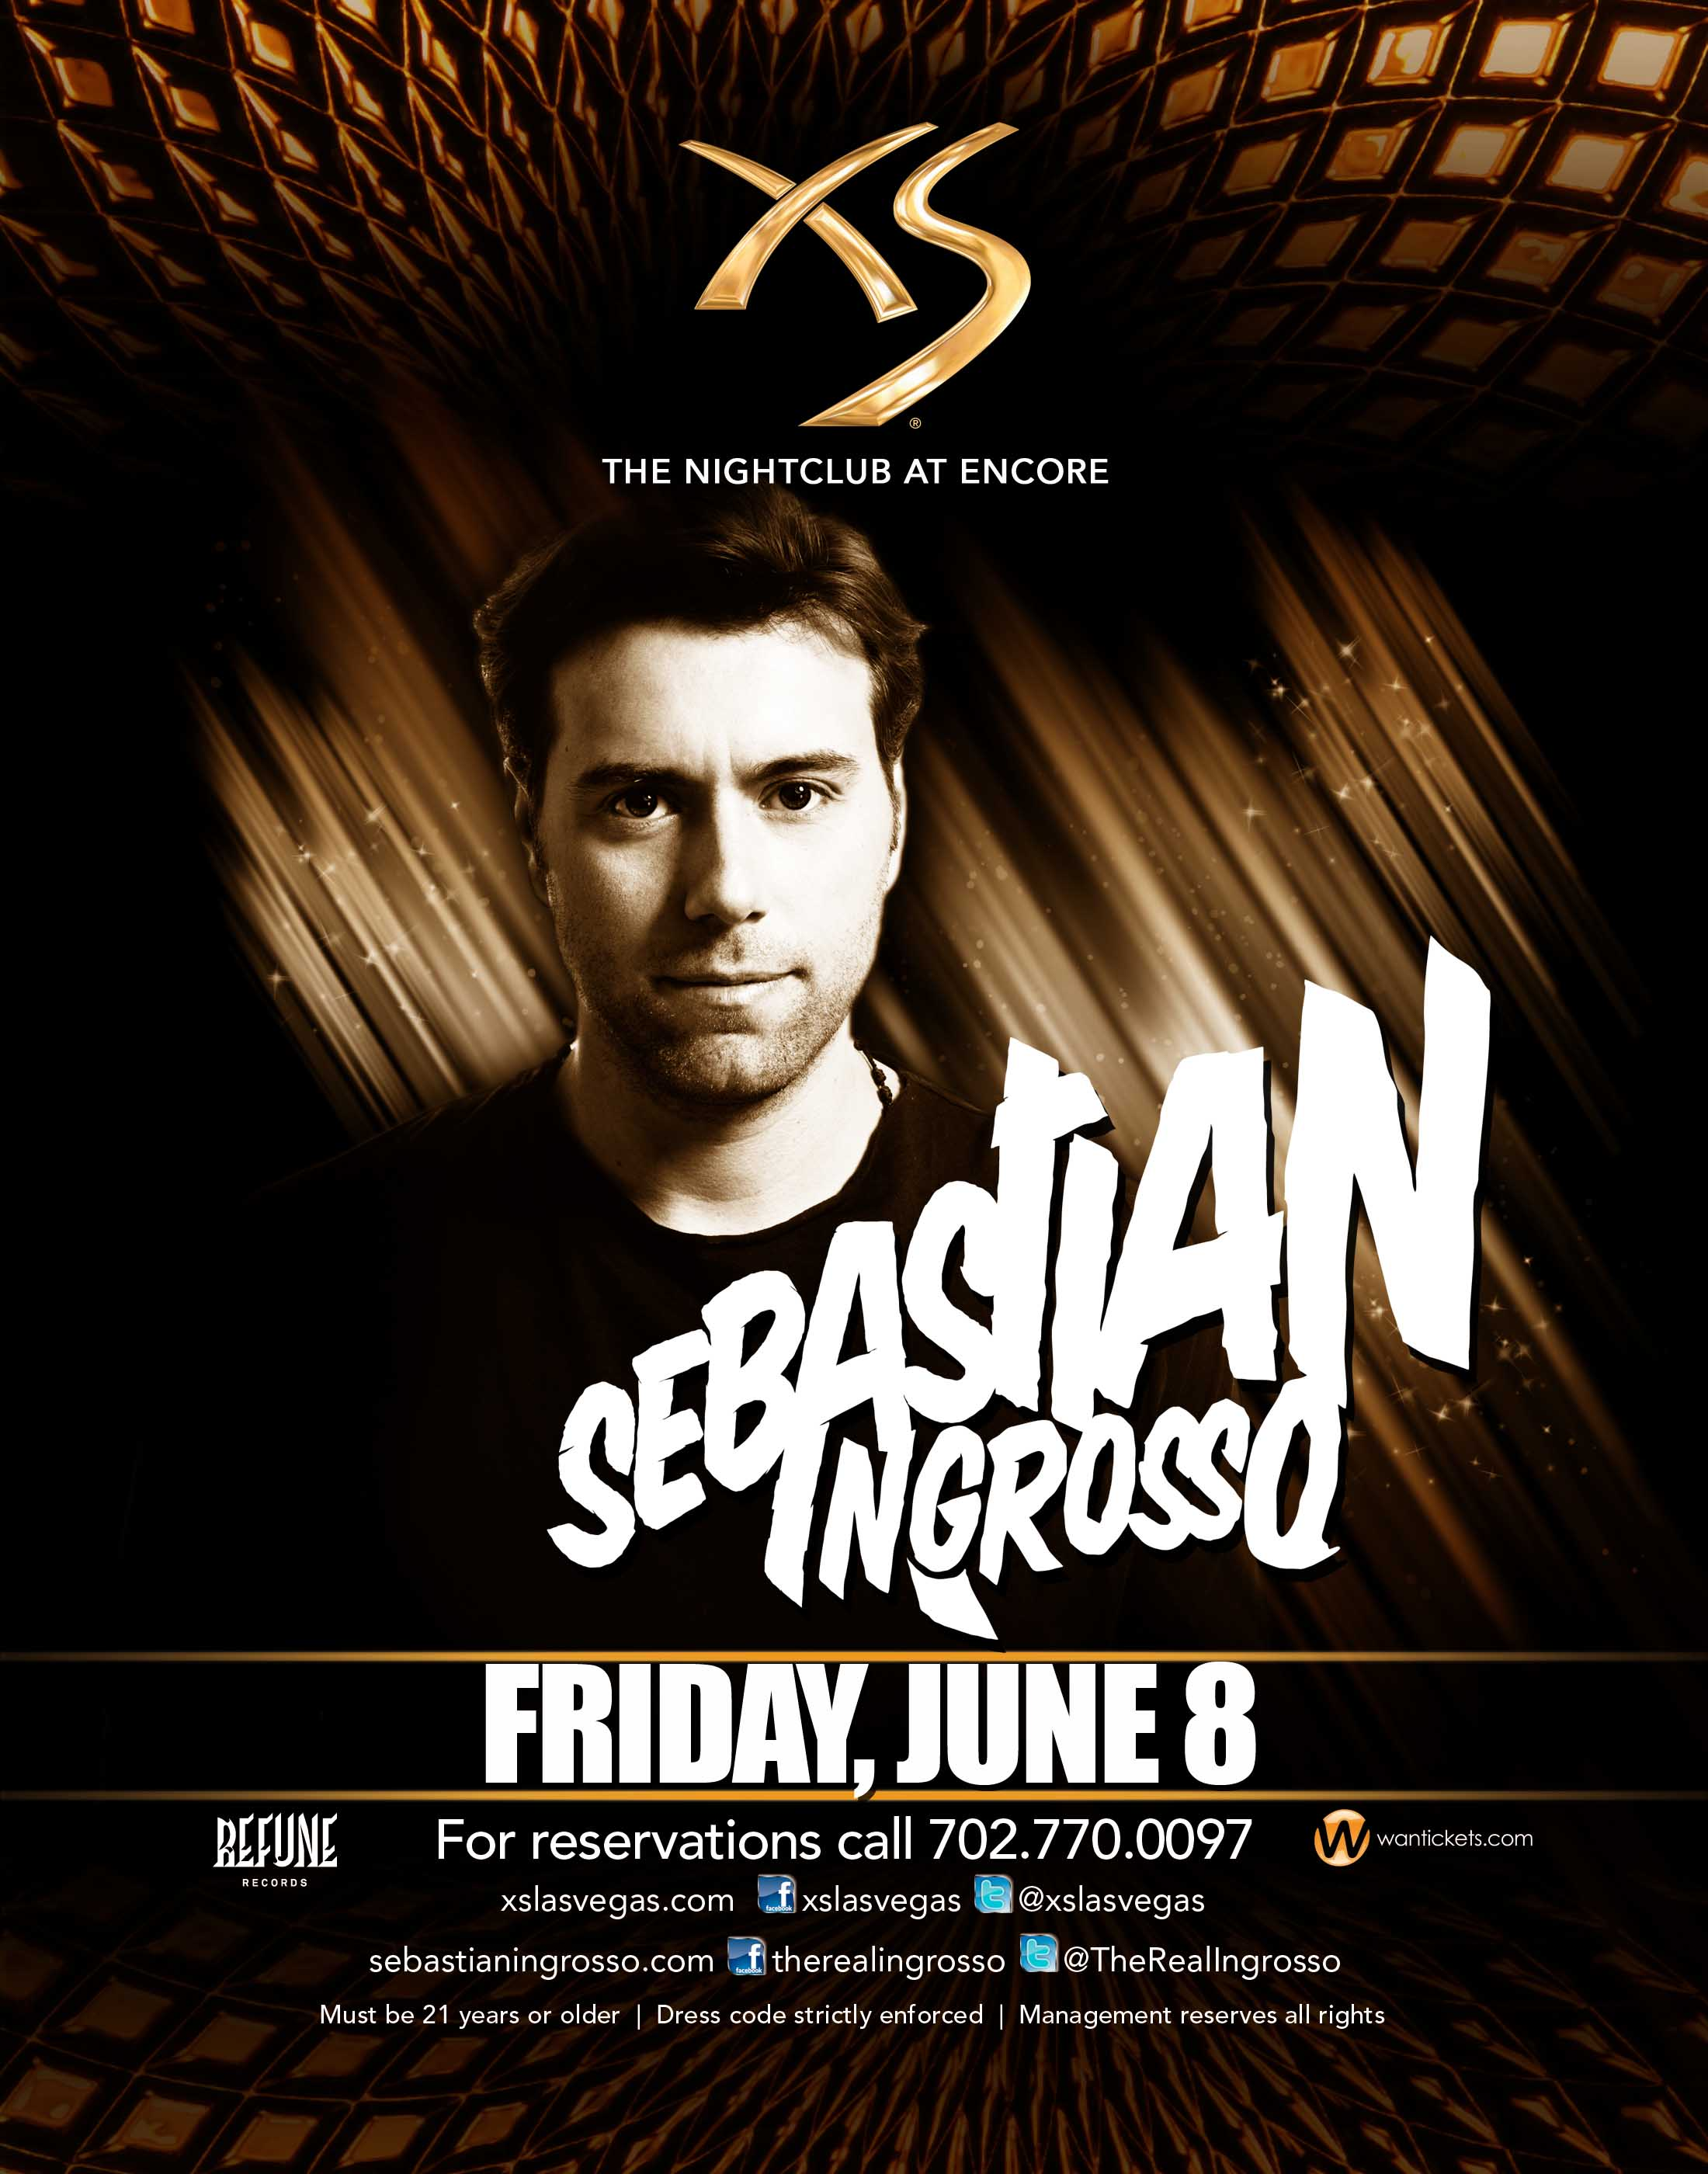 XS Nightclub presents Sebastian Ingrosso, June 8, 2012